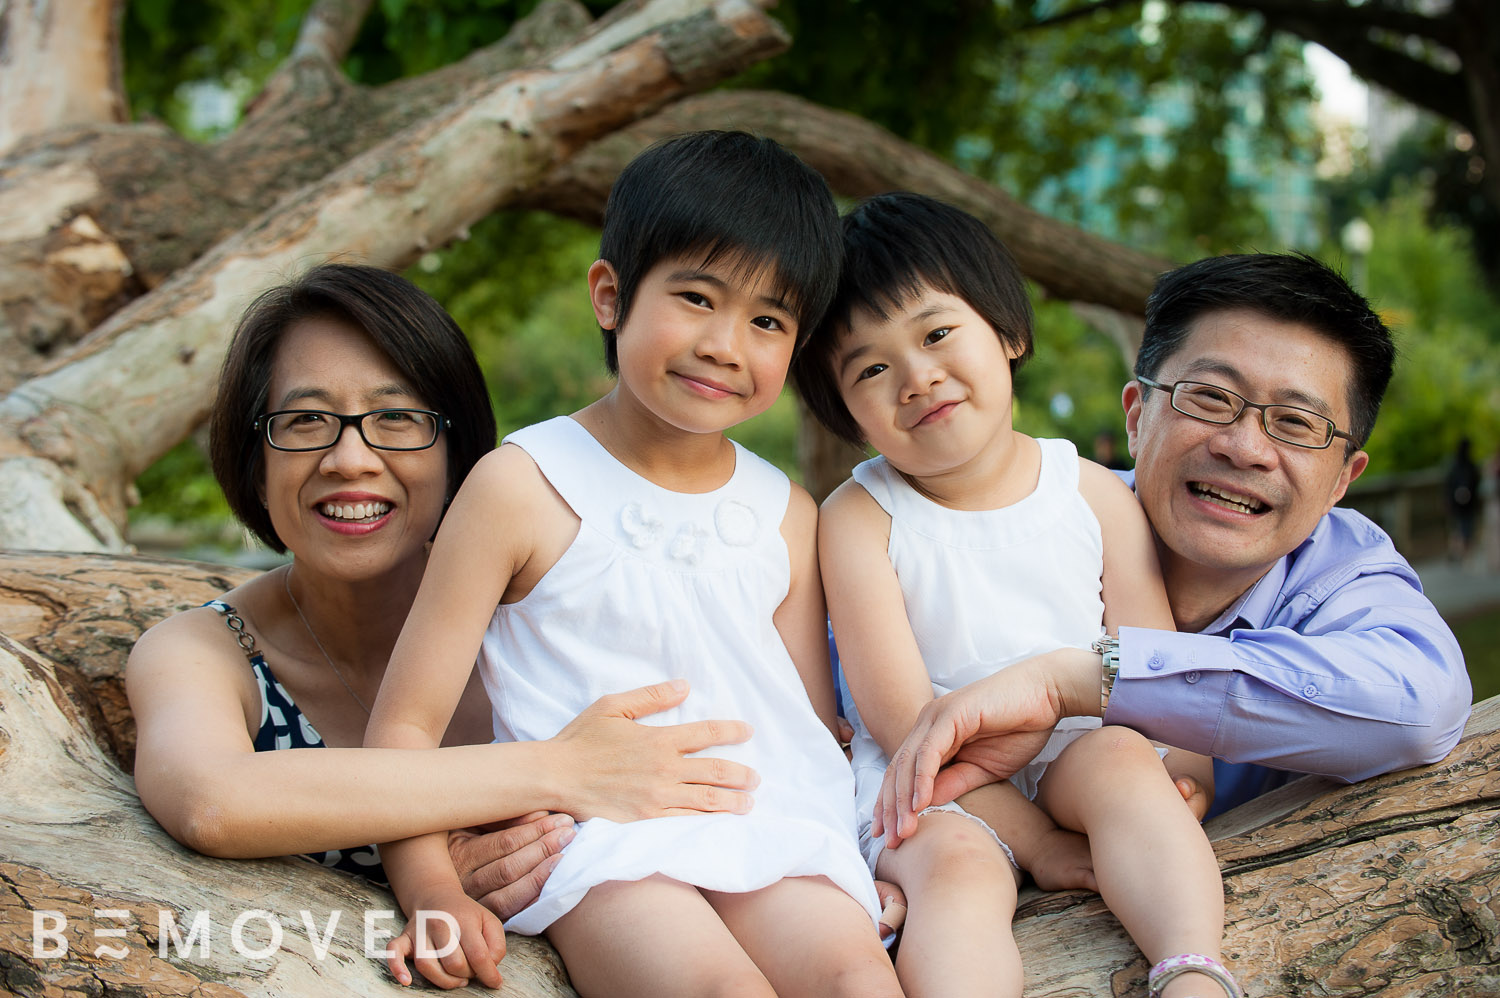 005_stanley-park-family-photography.jpg